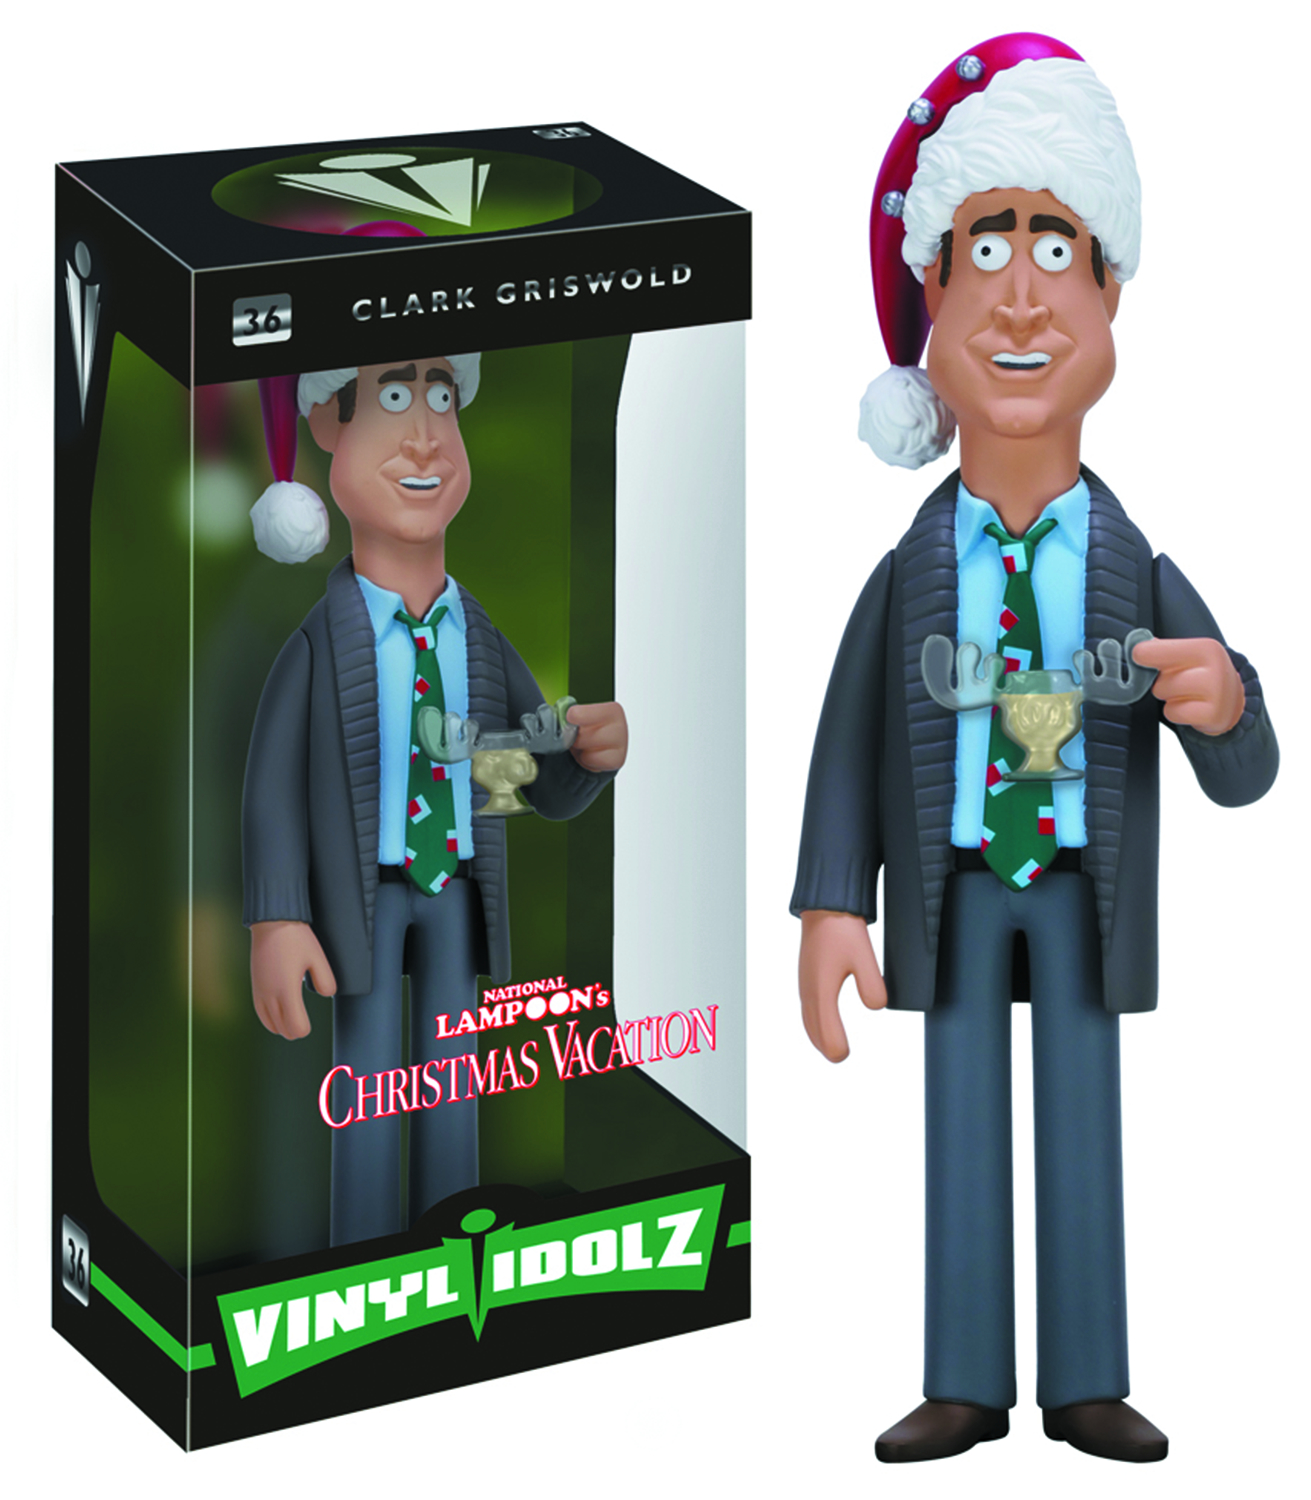 VINYL IDOLZ CHRISTMAS VACATION CLARK GRISWOLD VINYL FIG